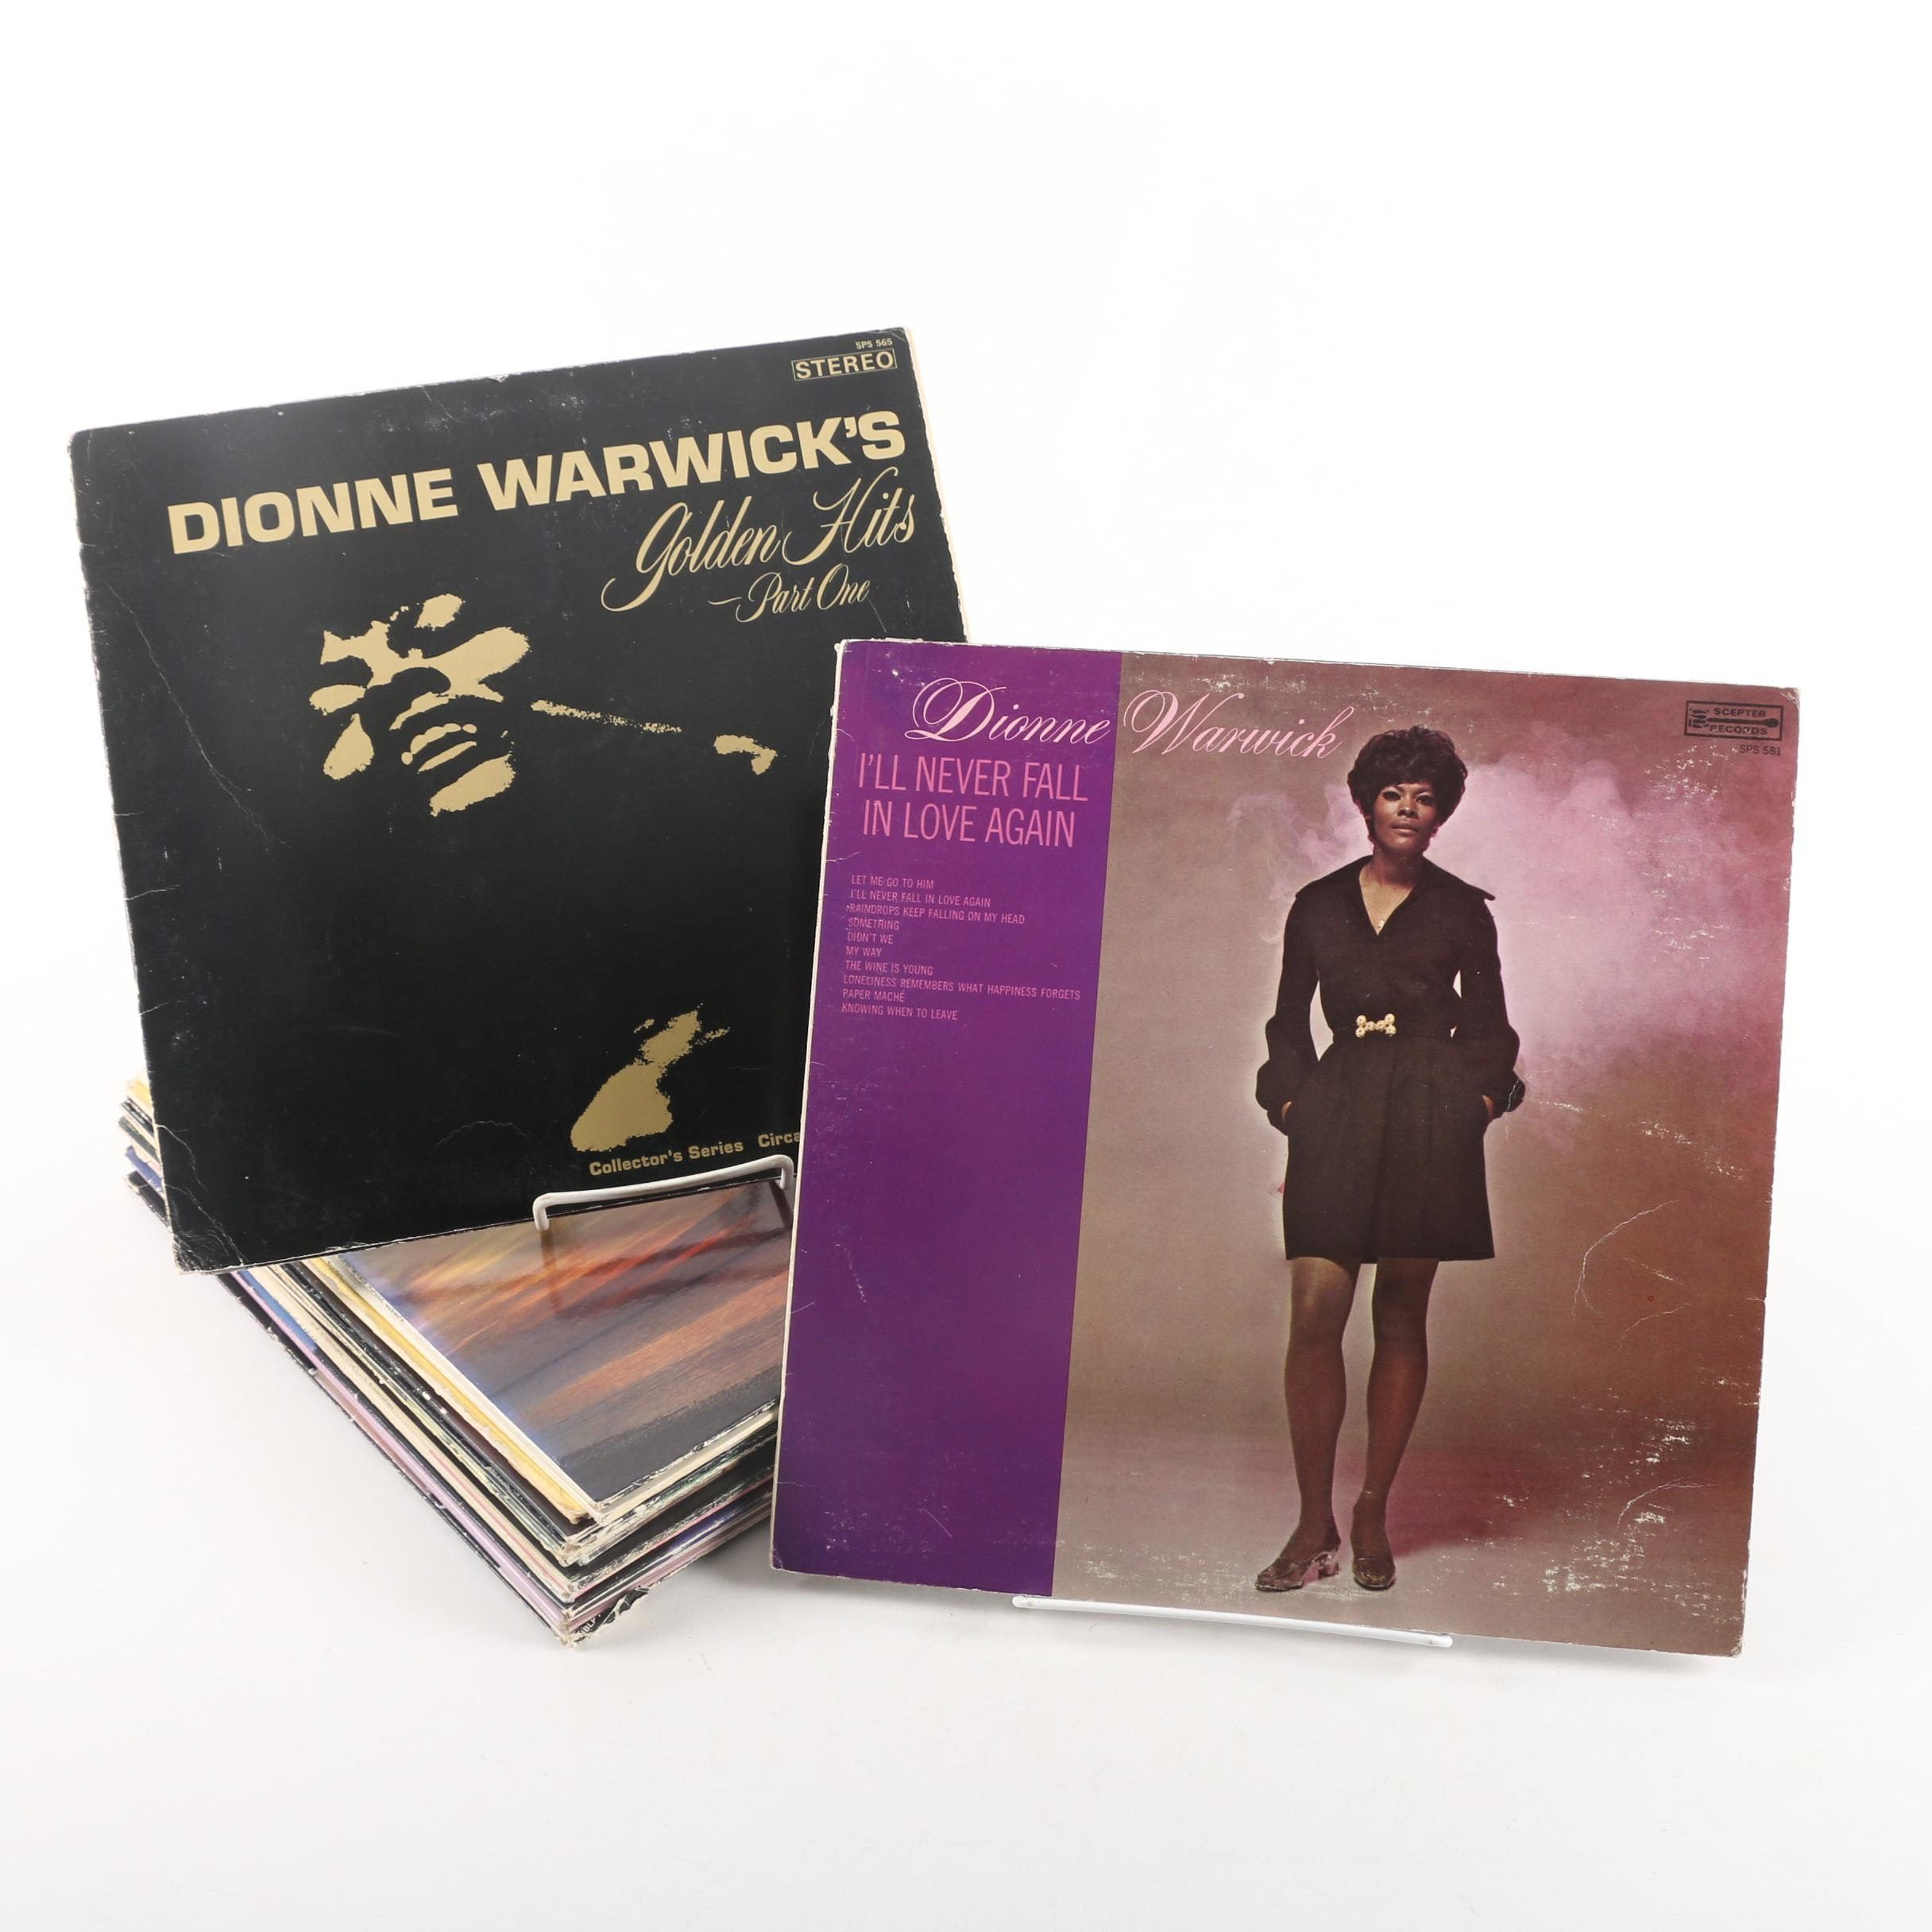 Vintage Pop and Soul Records Including Dionne Warwick and The Supremes